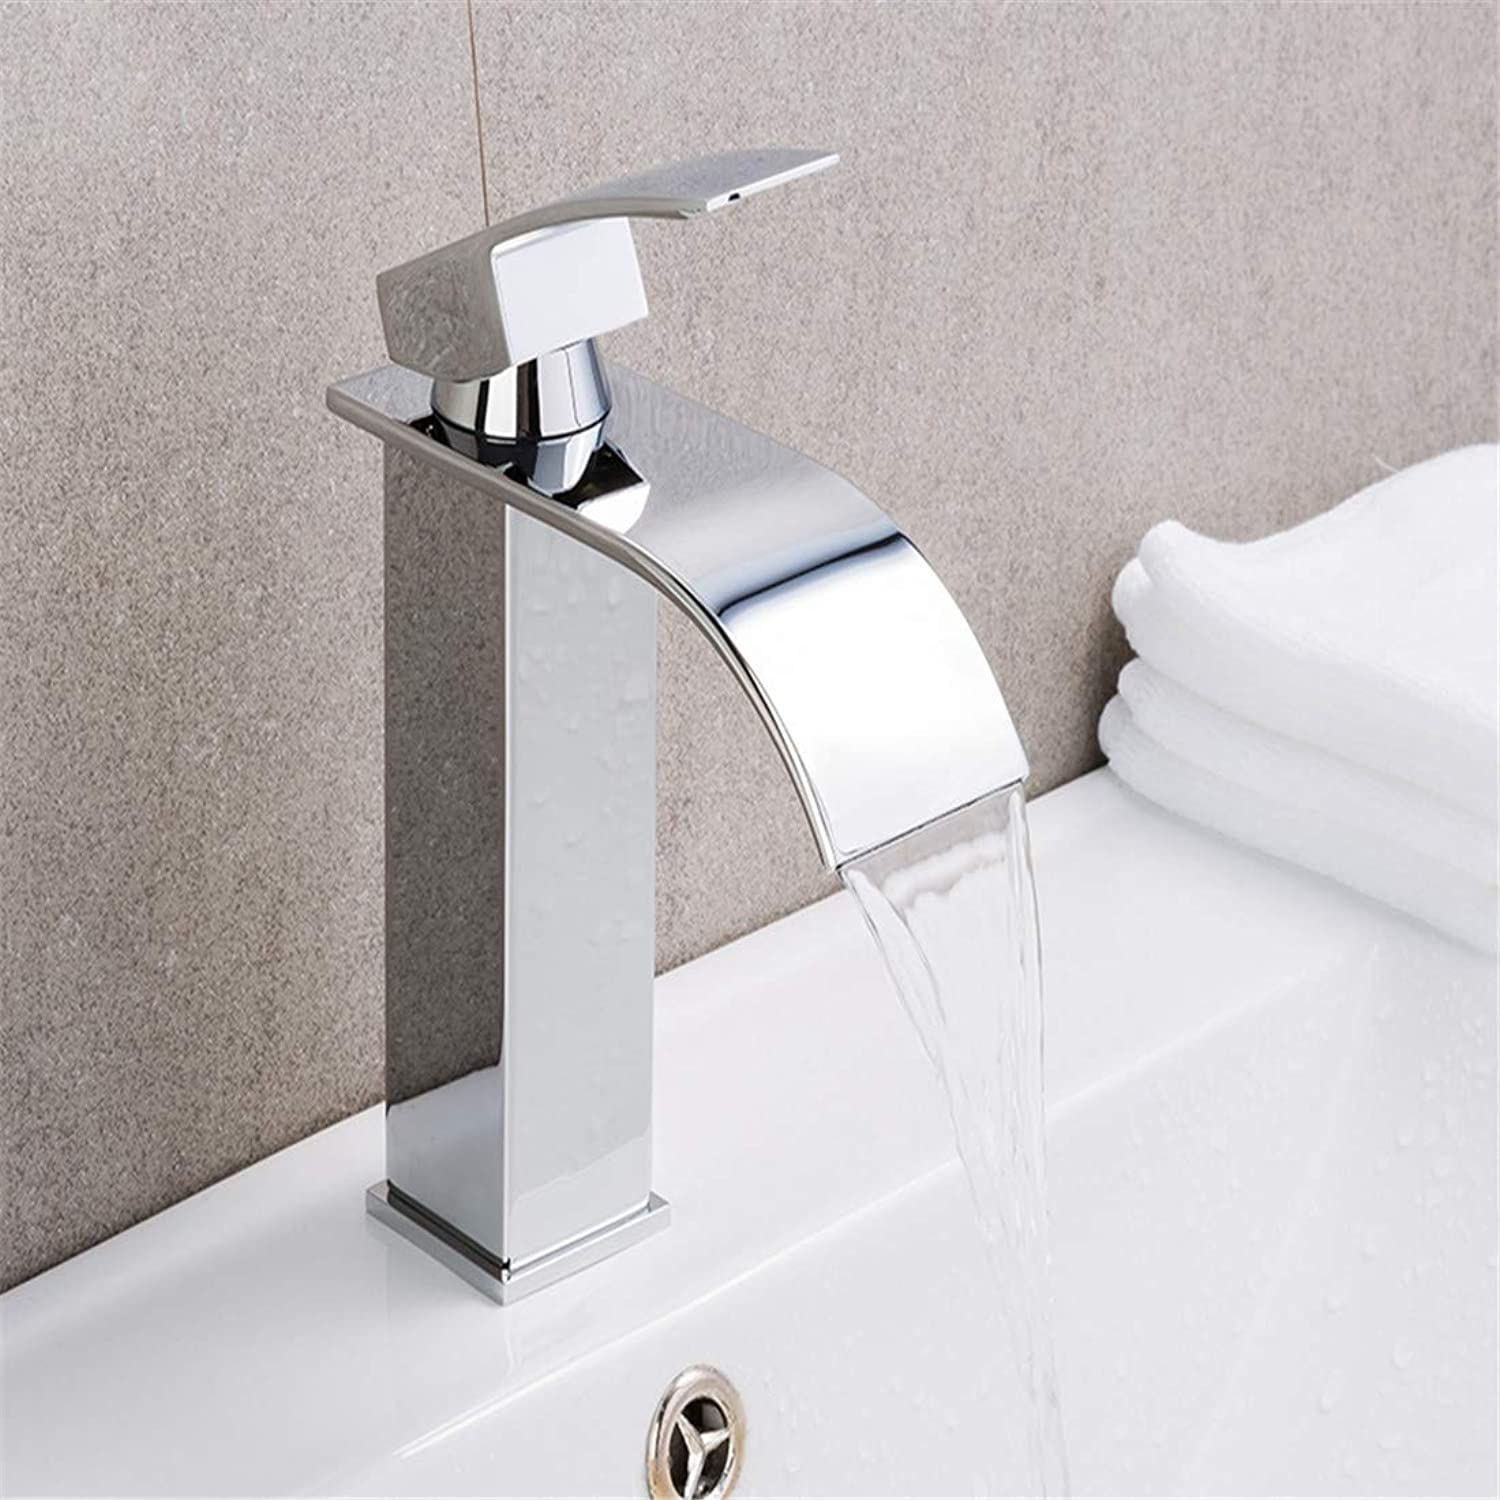 Retro Plated Plated Plated Hot and Cold Faucet Faucetbasin Vanity Sink Faucet Single Handle Waterfall Bathroom Mixer 19a07a